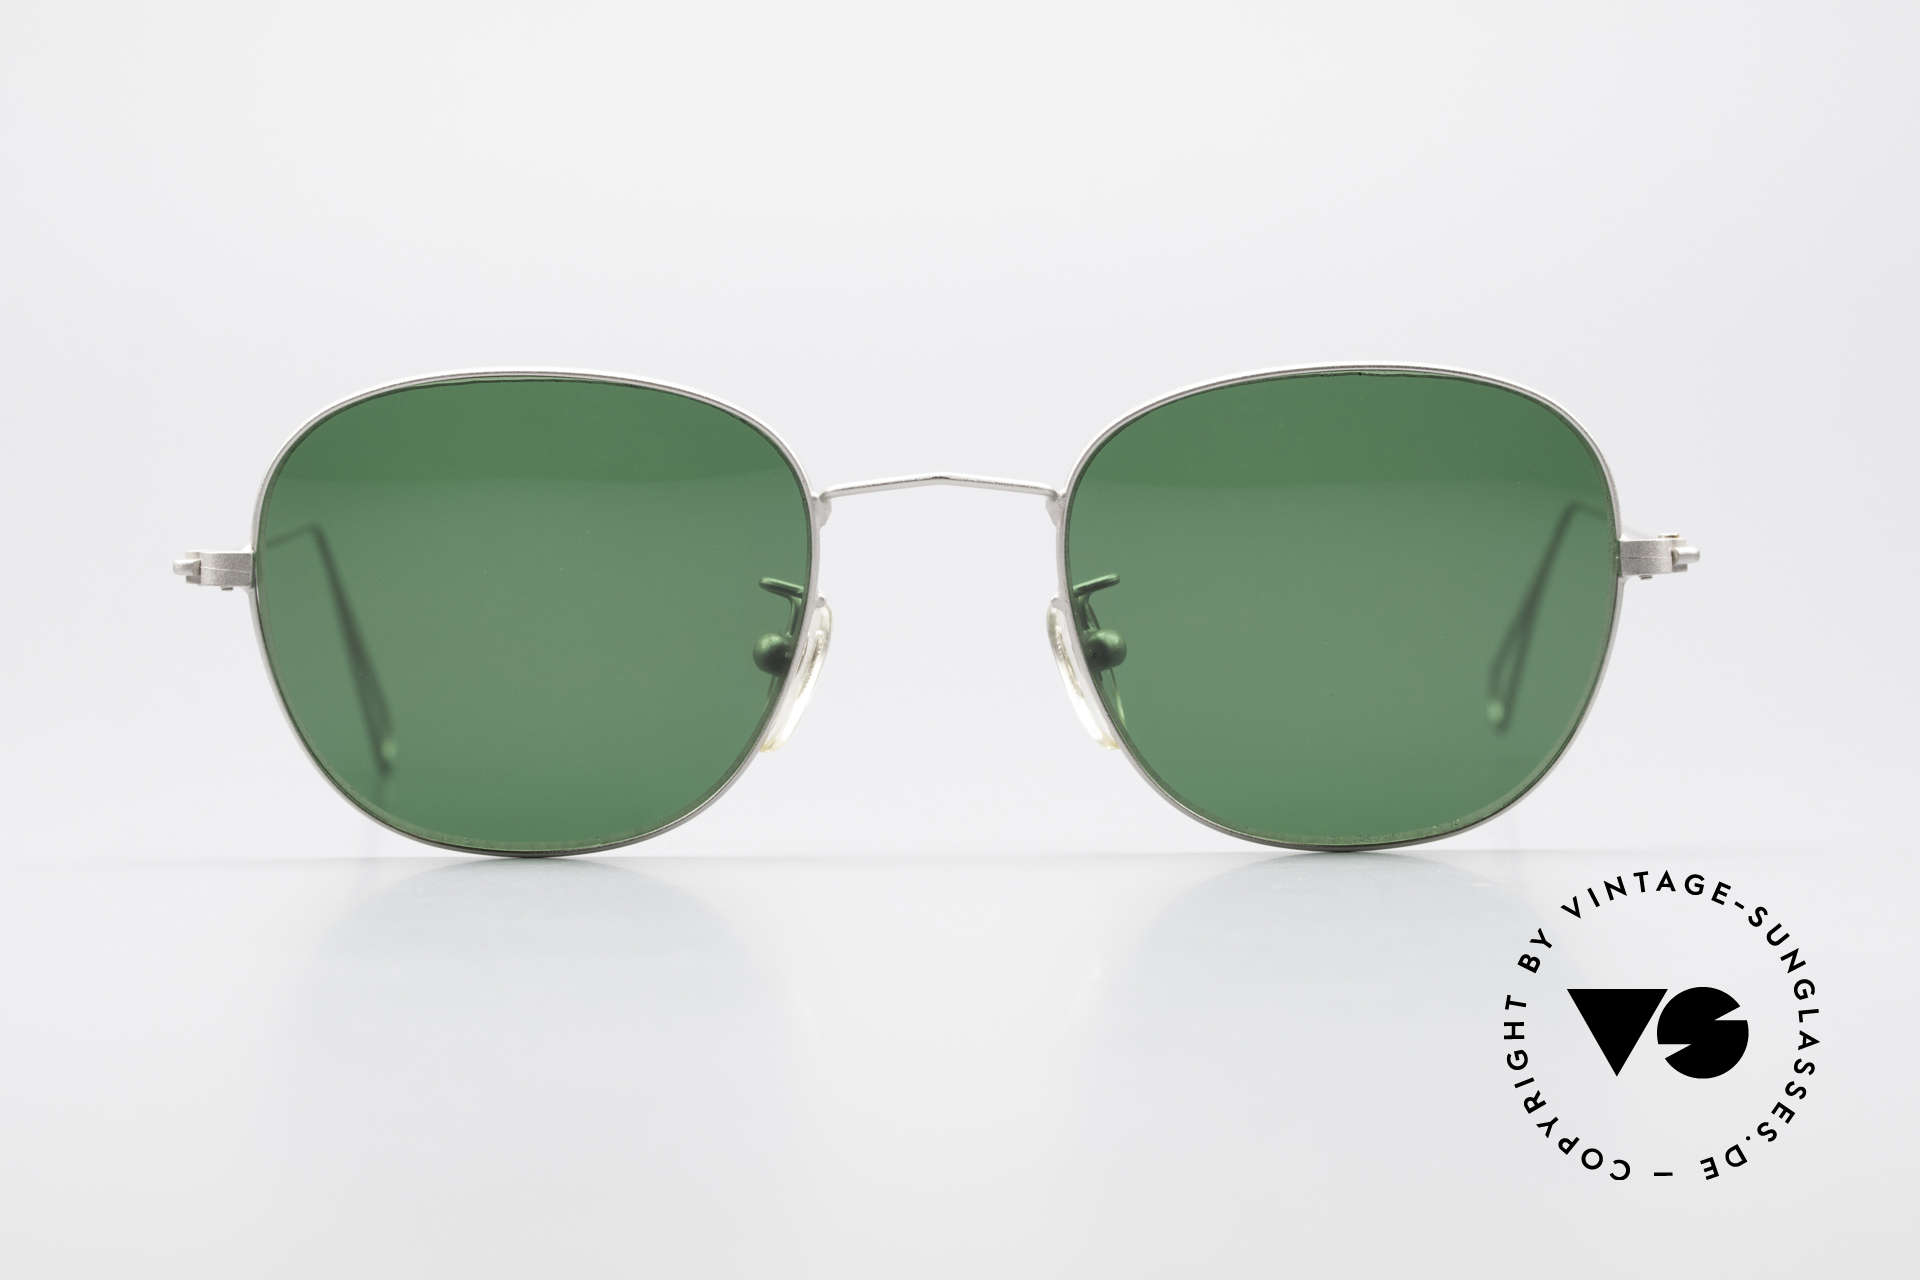 Cutler And Gross 0307 Classic Vintage Sunglasses, classic, timeless UNDERSTATEMENT luxury sunglasses, Made for Men and Women